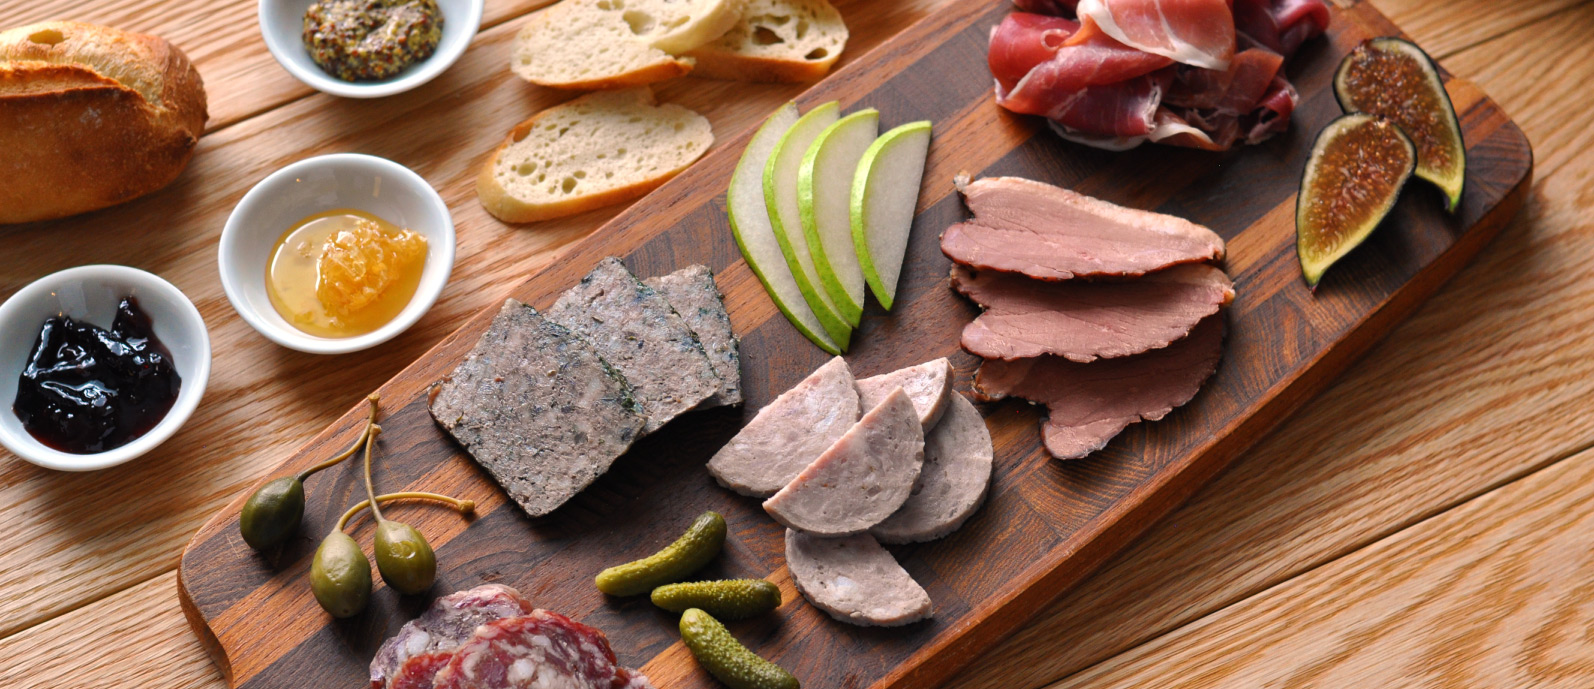 Up to 25% off Select Charcuterie